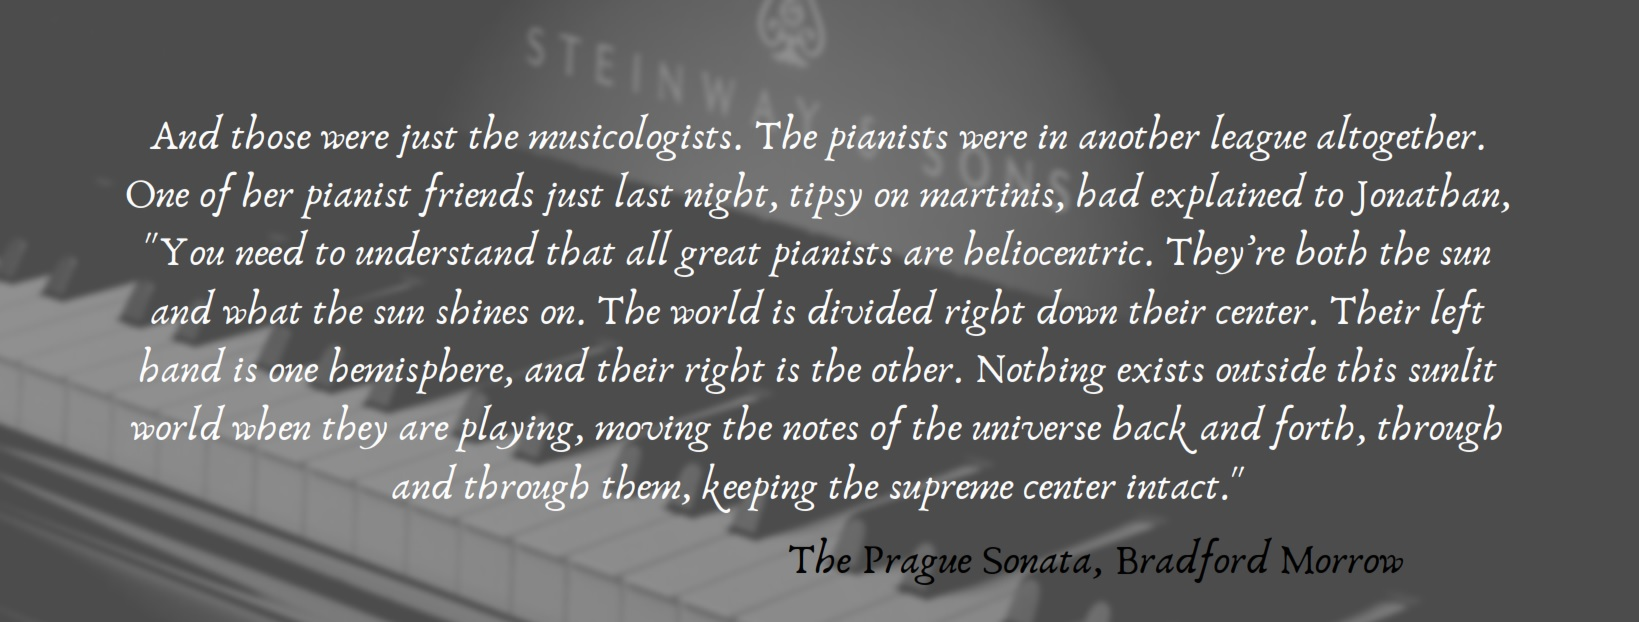 "Quote from ""The Prague Sonata"" by Bradford Morrow"